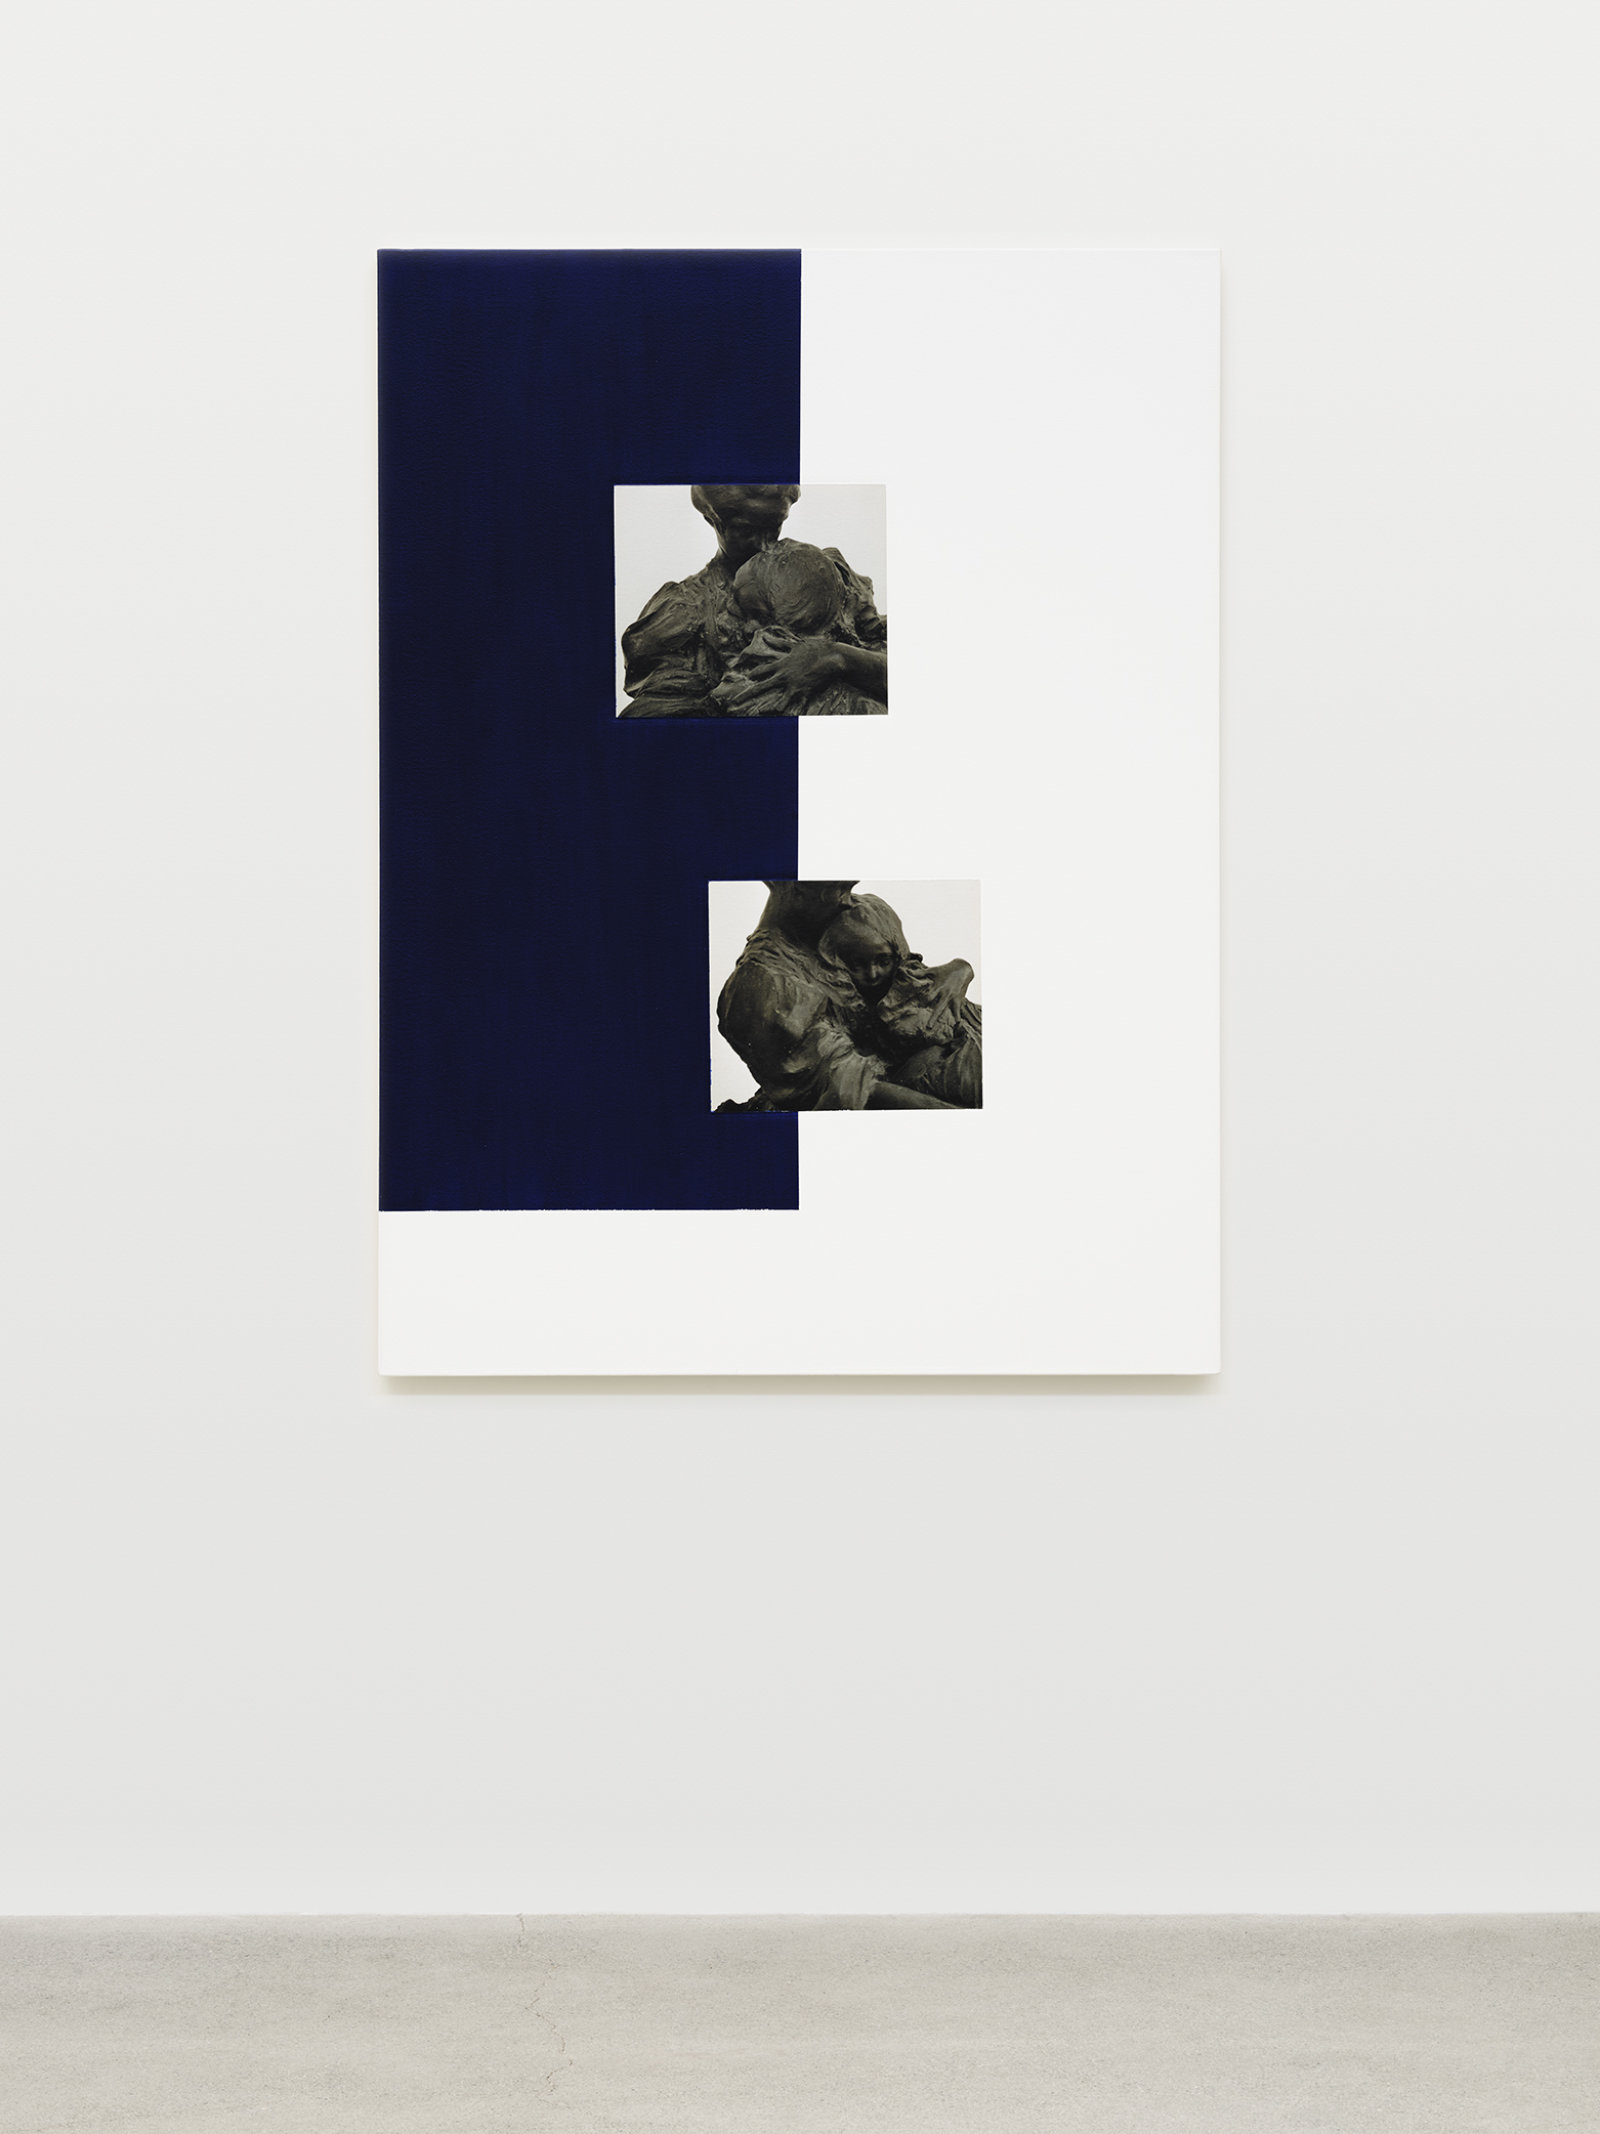 Ian Wallace, Materia, 2008, photolaminate with acrylic on canvas, 48 x 36 in. (122 x 91 cm)